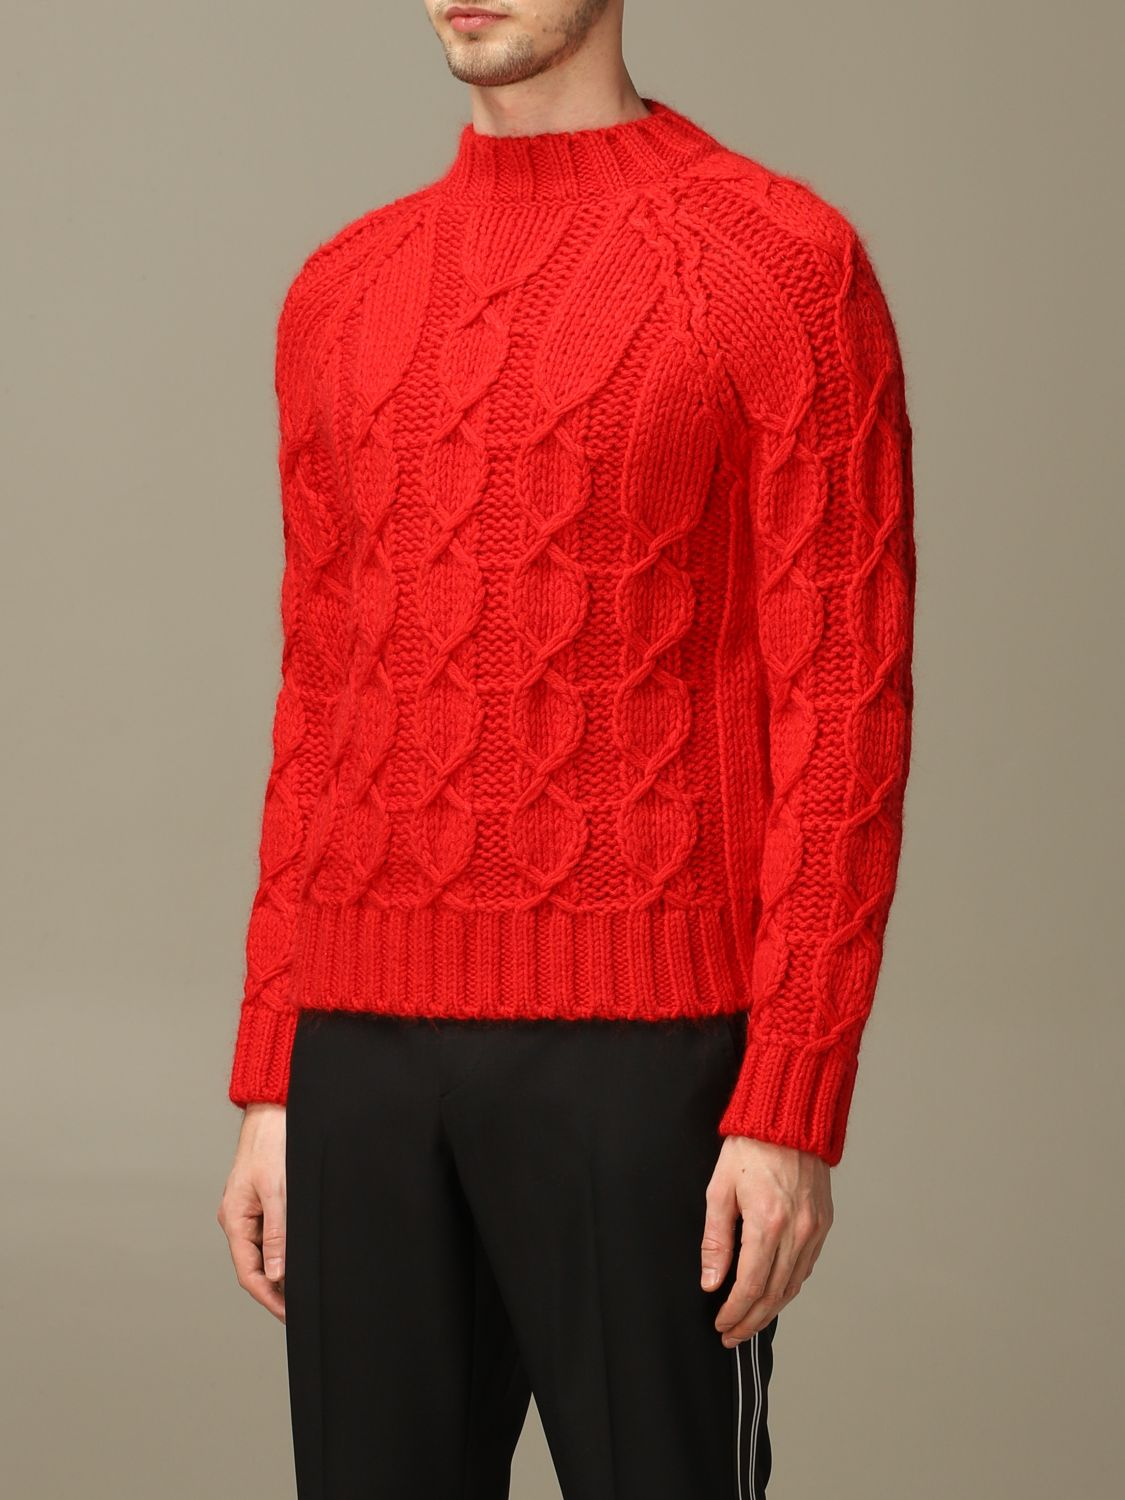 Sweater Saint Laurent: Saint Laurent cable sweater in Mohair wool red 3